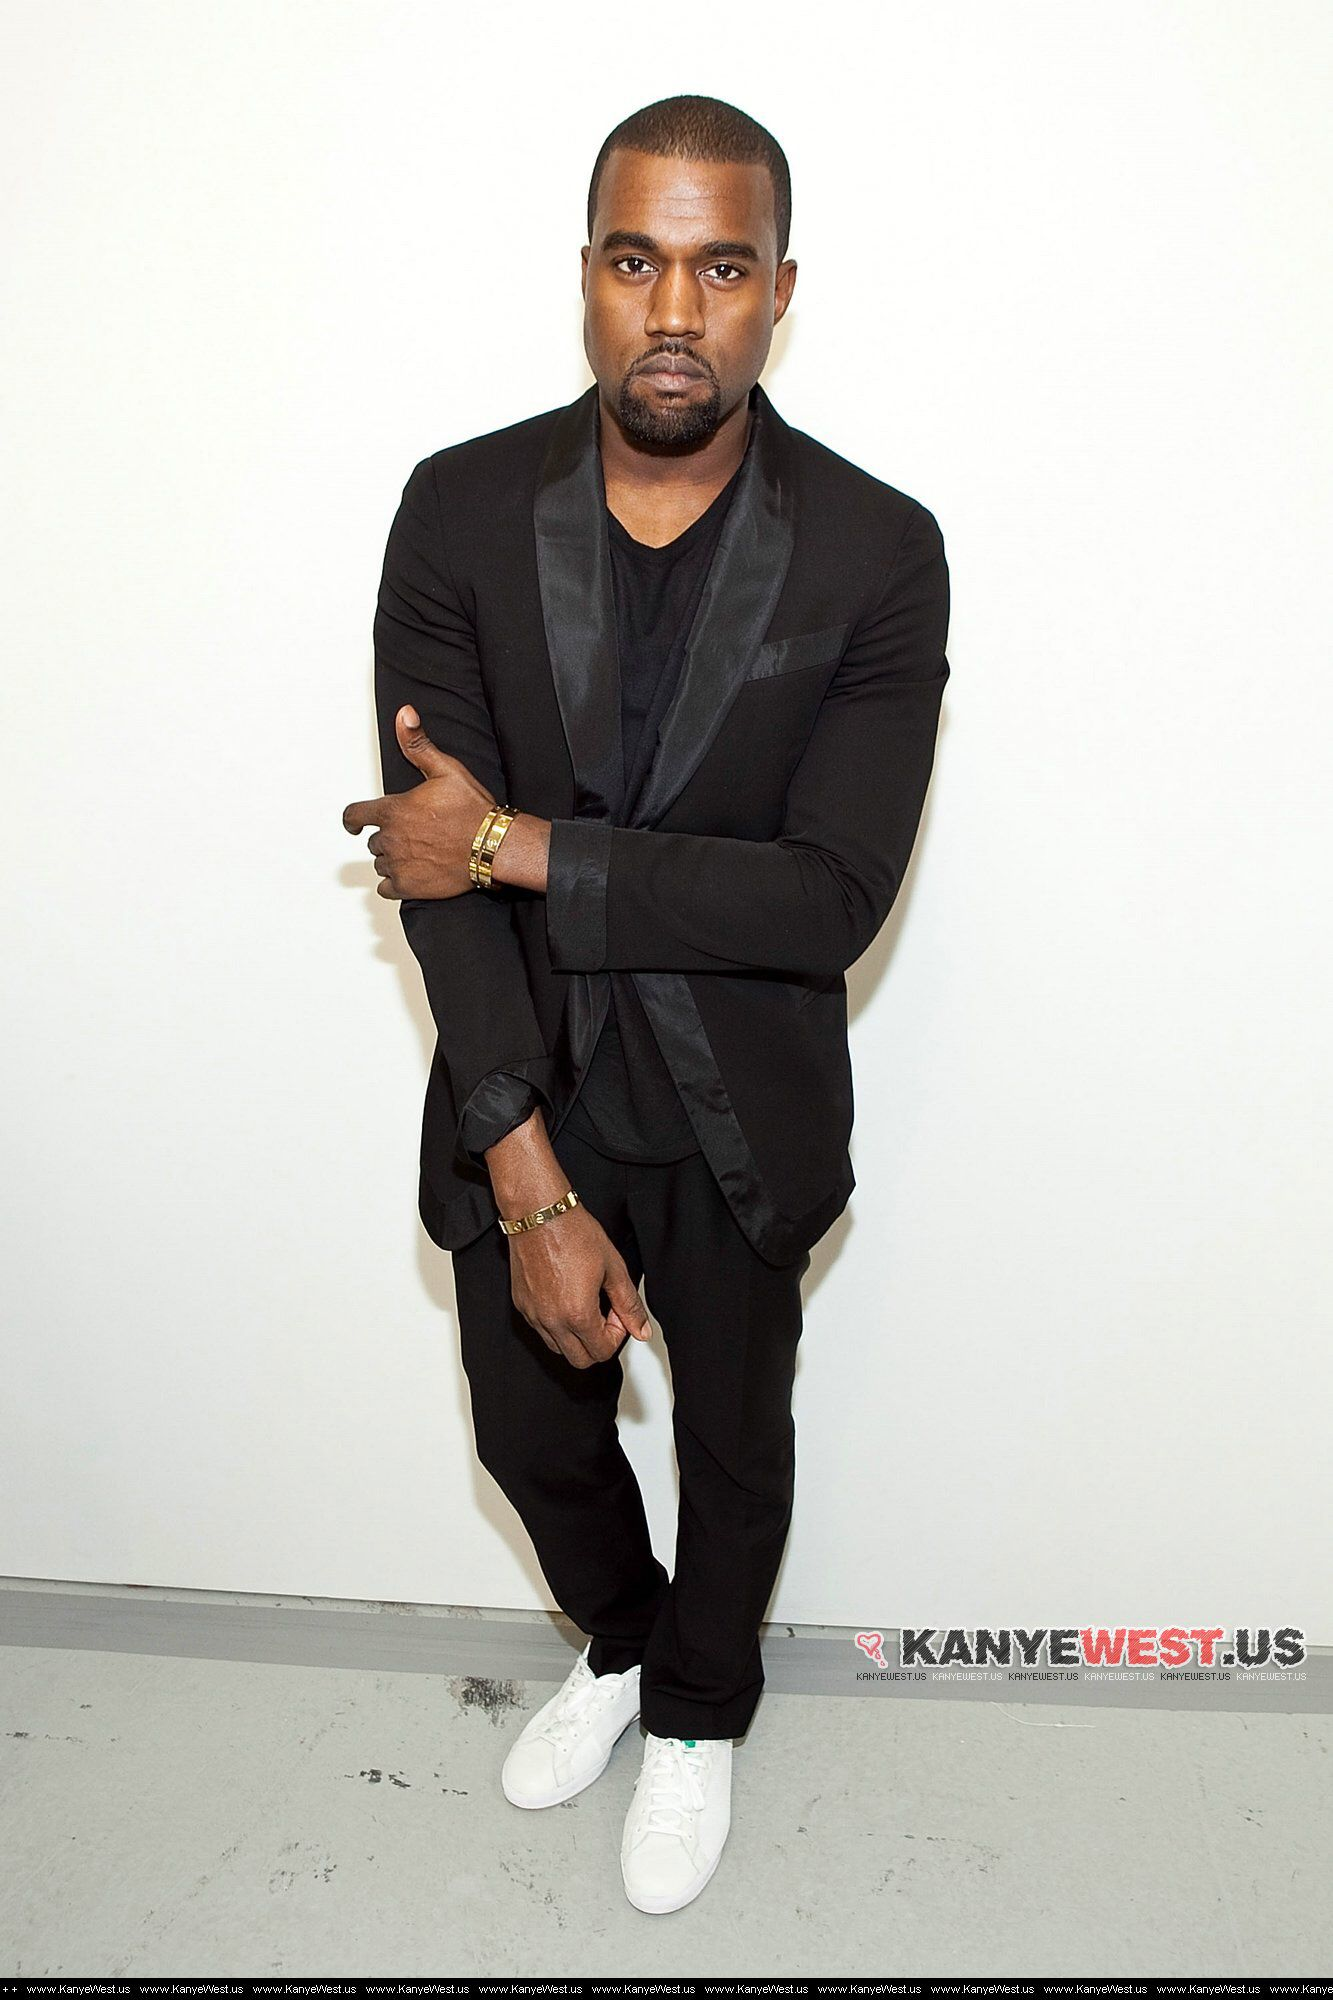 Kanye On Stan Smith With Tuxedo Jacket